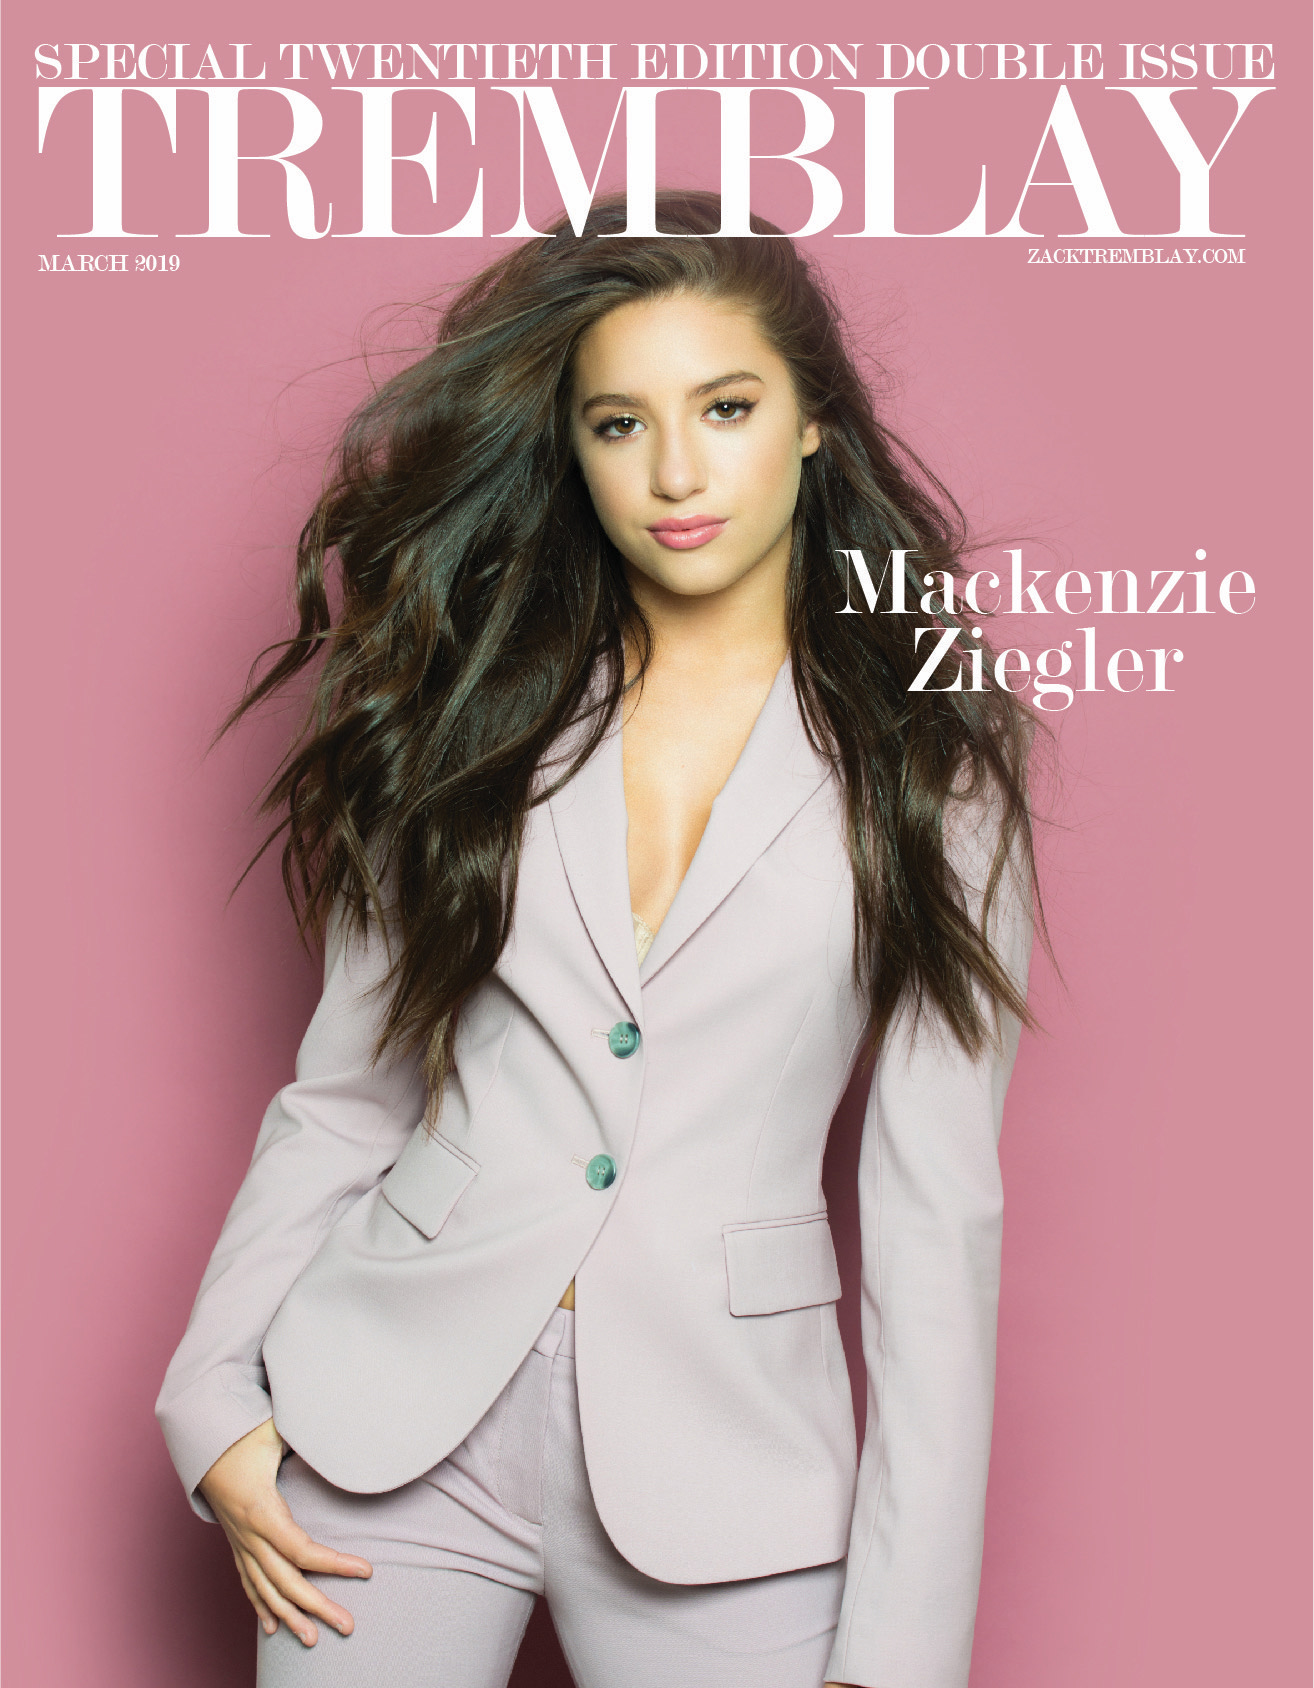 Kenzie on the cover of Tremblay Magazine! - Ziegler Girls